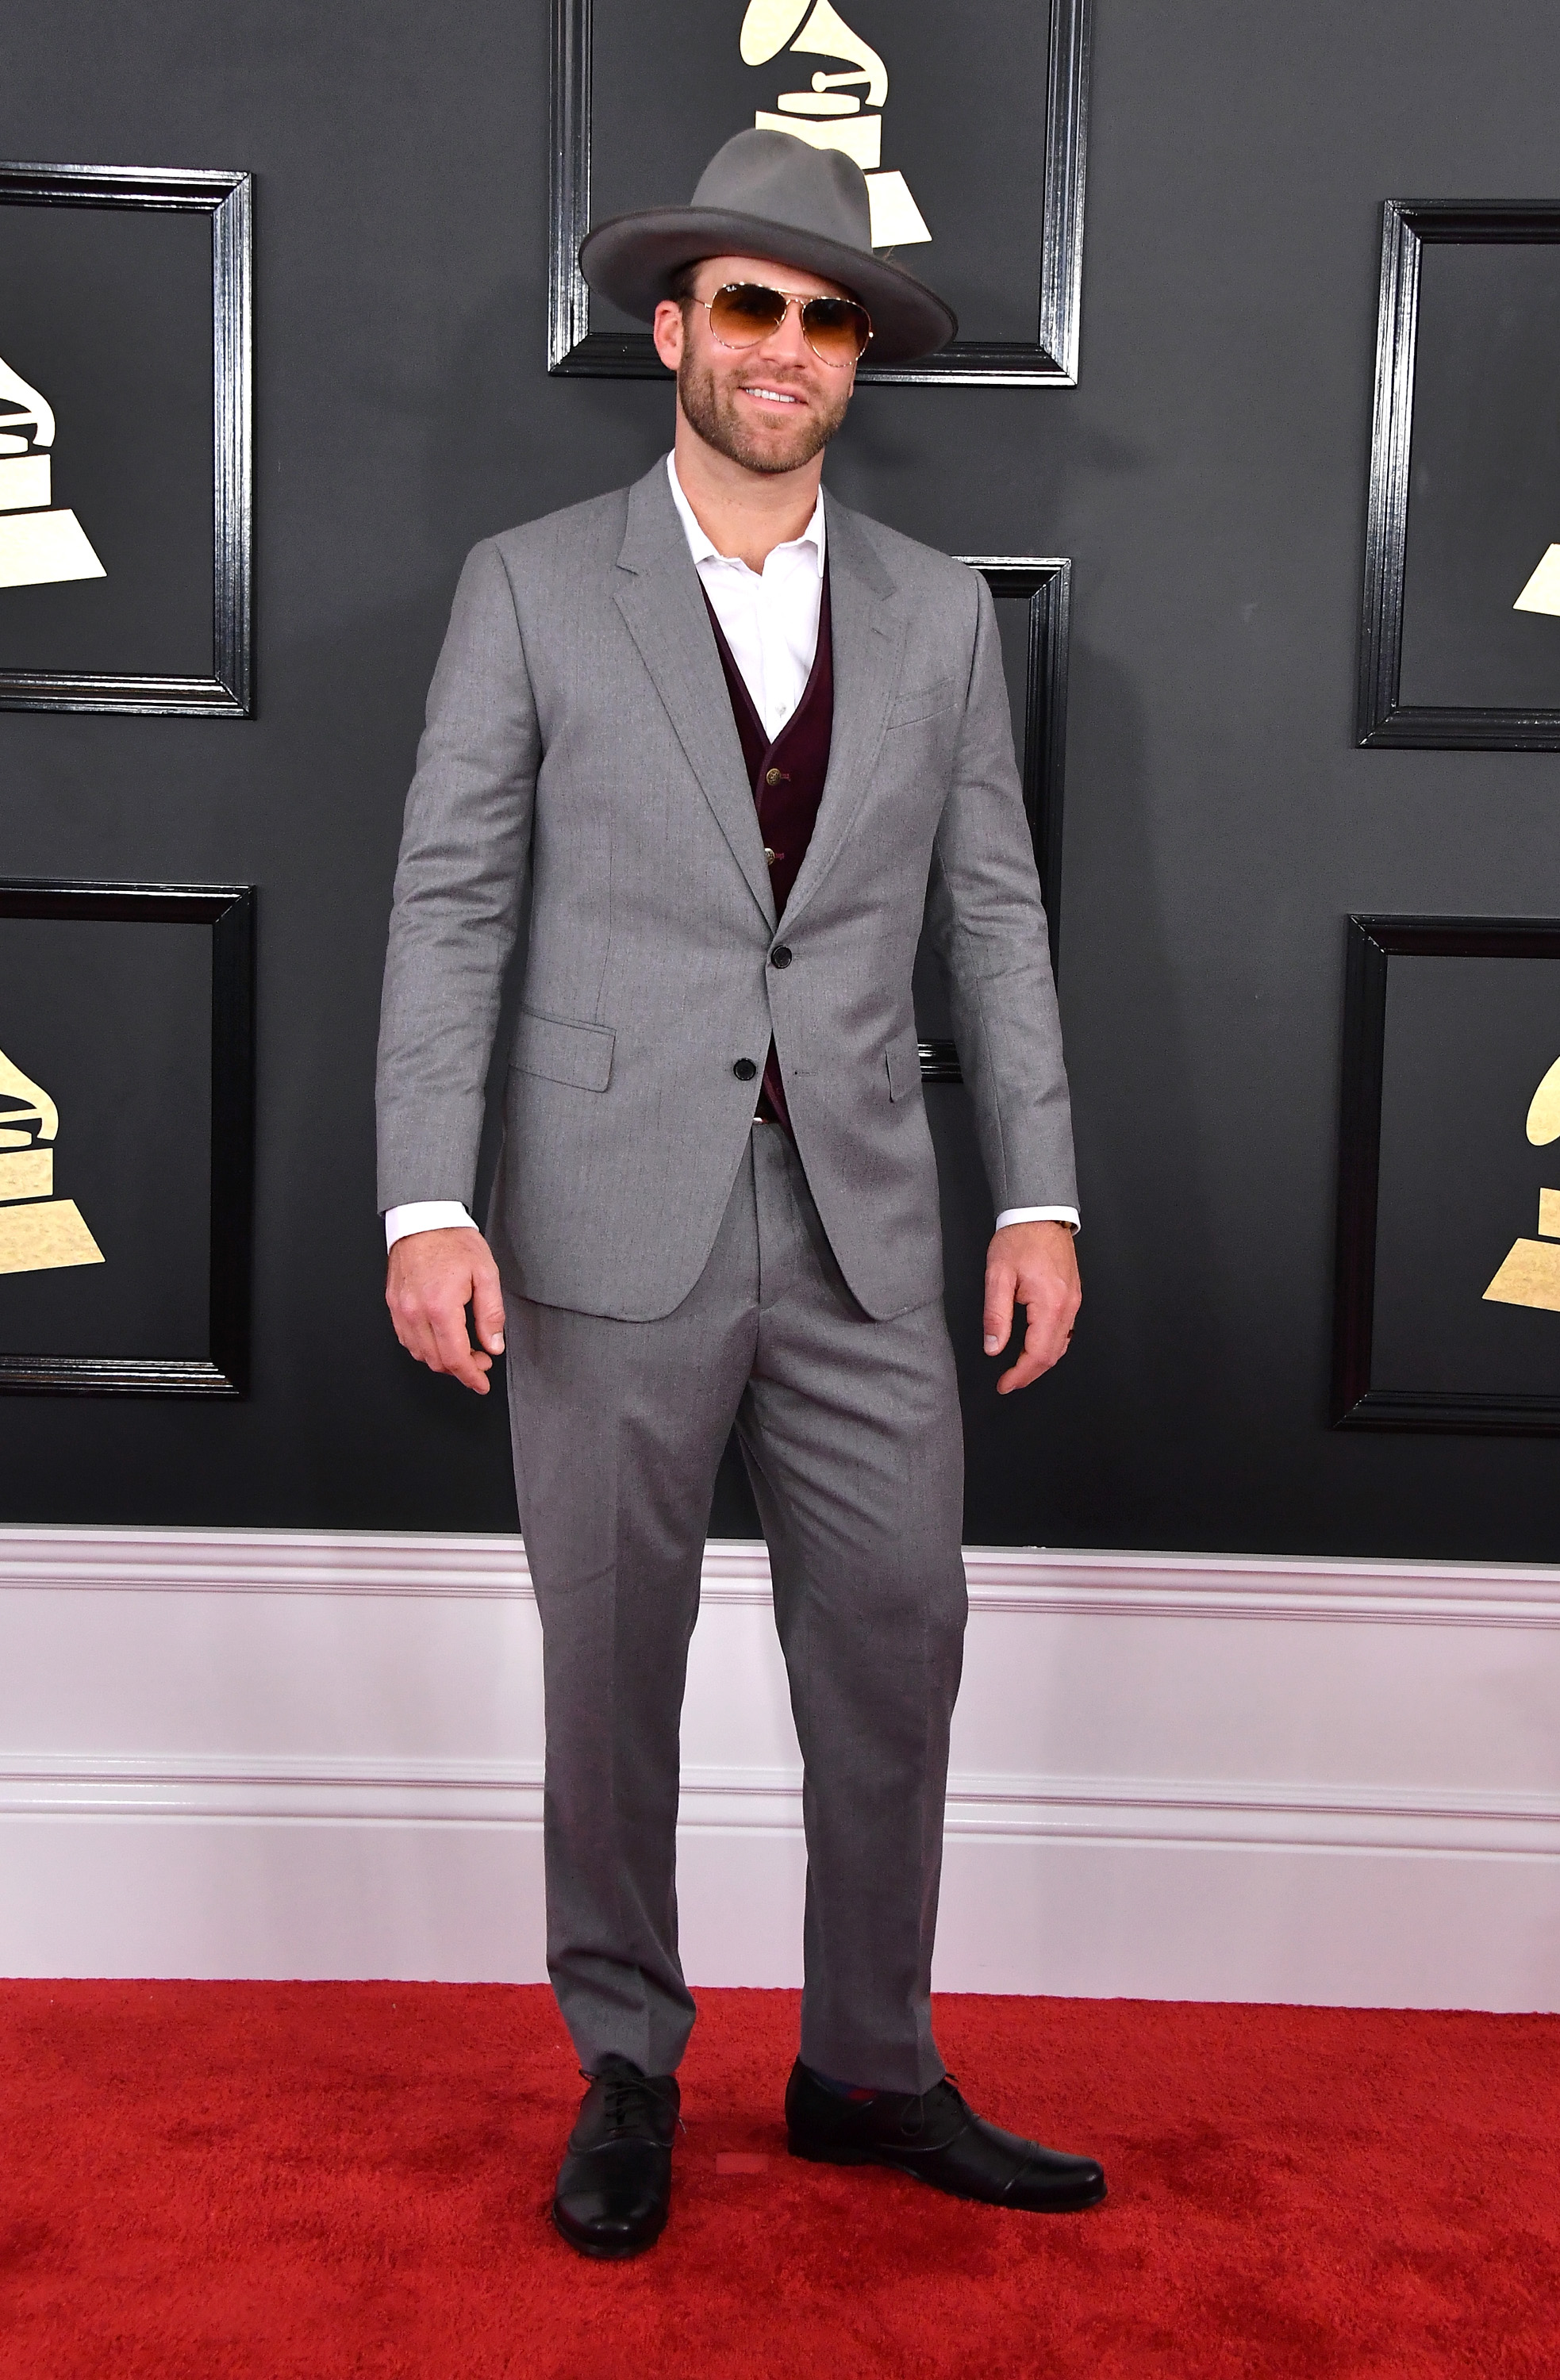 Drake White attends The 59th GRAMMY Awards at STAPLES Center; Photo by Steve Granitz/WireImage